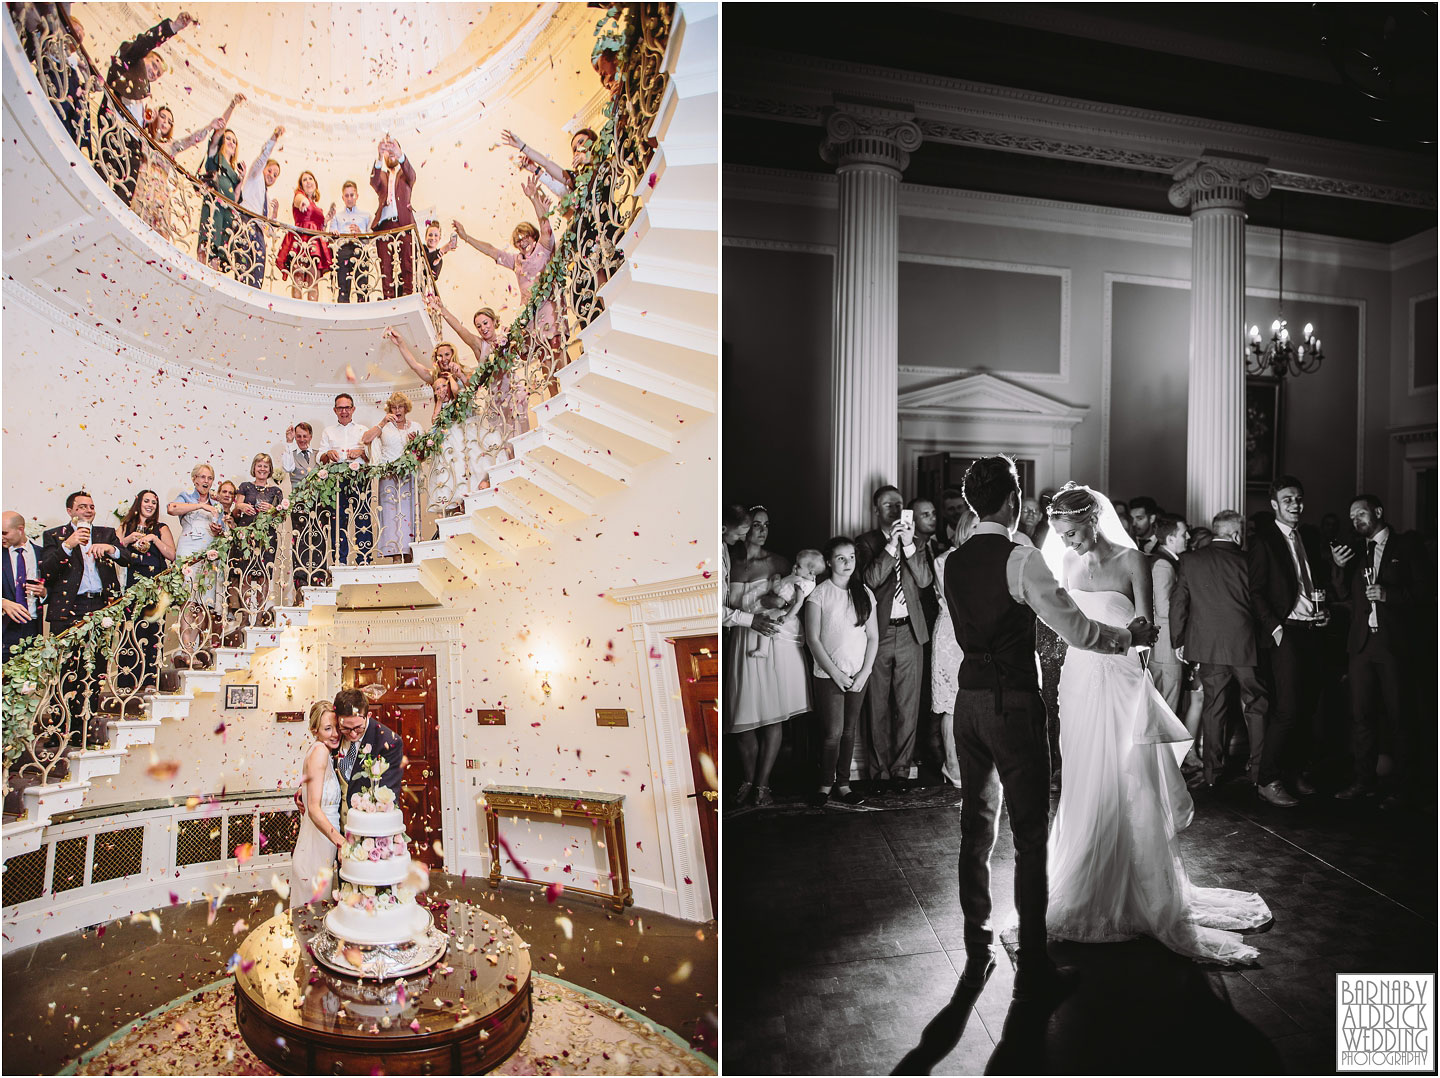 Wedding photography of the cake cutting and first dance at Denton Hall near Ilkley